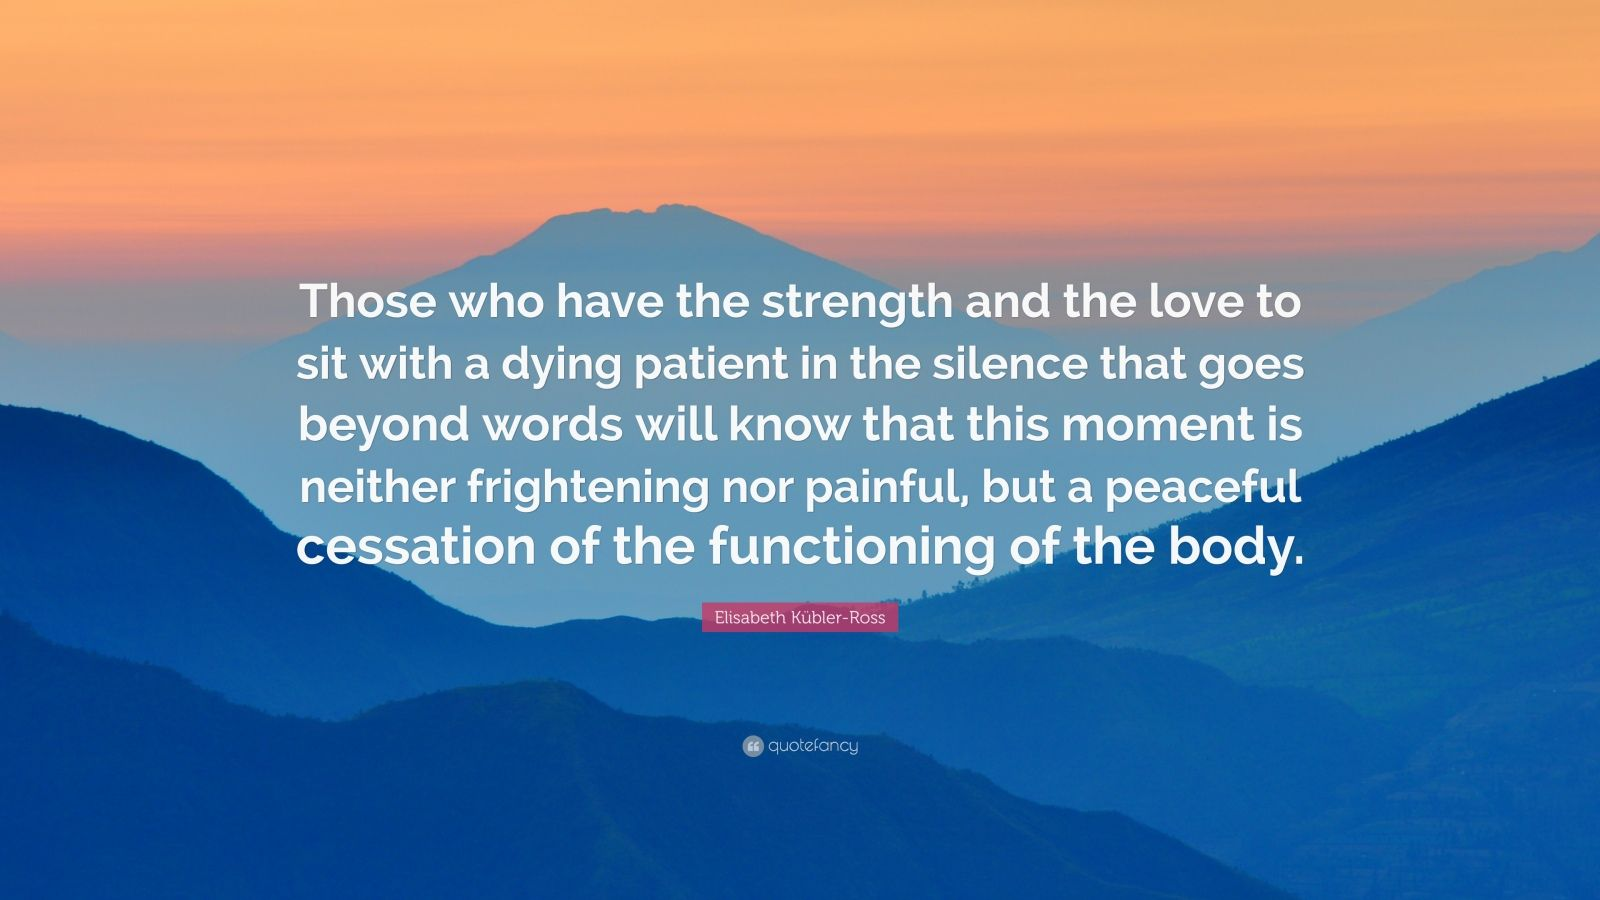 """Elisabeth Kübler-Ross Quote: """"Those who have the strength and the love to sit with a dying patient in the silence that goes beyond words will know that this moment is neither frightening nor painful, but a peaceful cessation of the functioning of the body."""""""